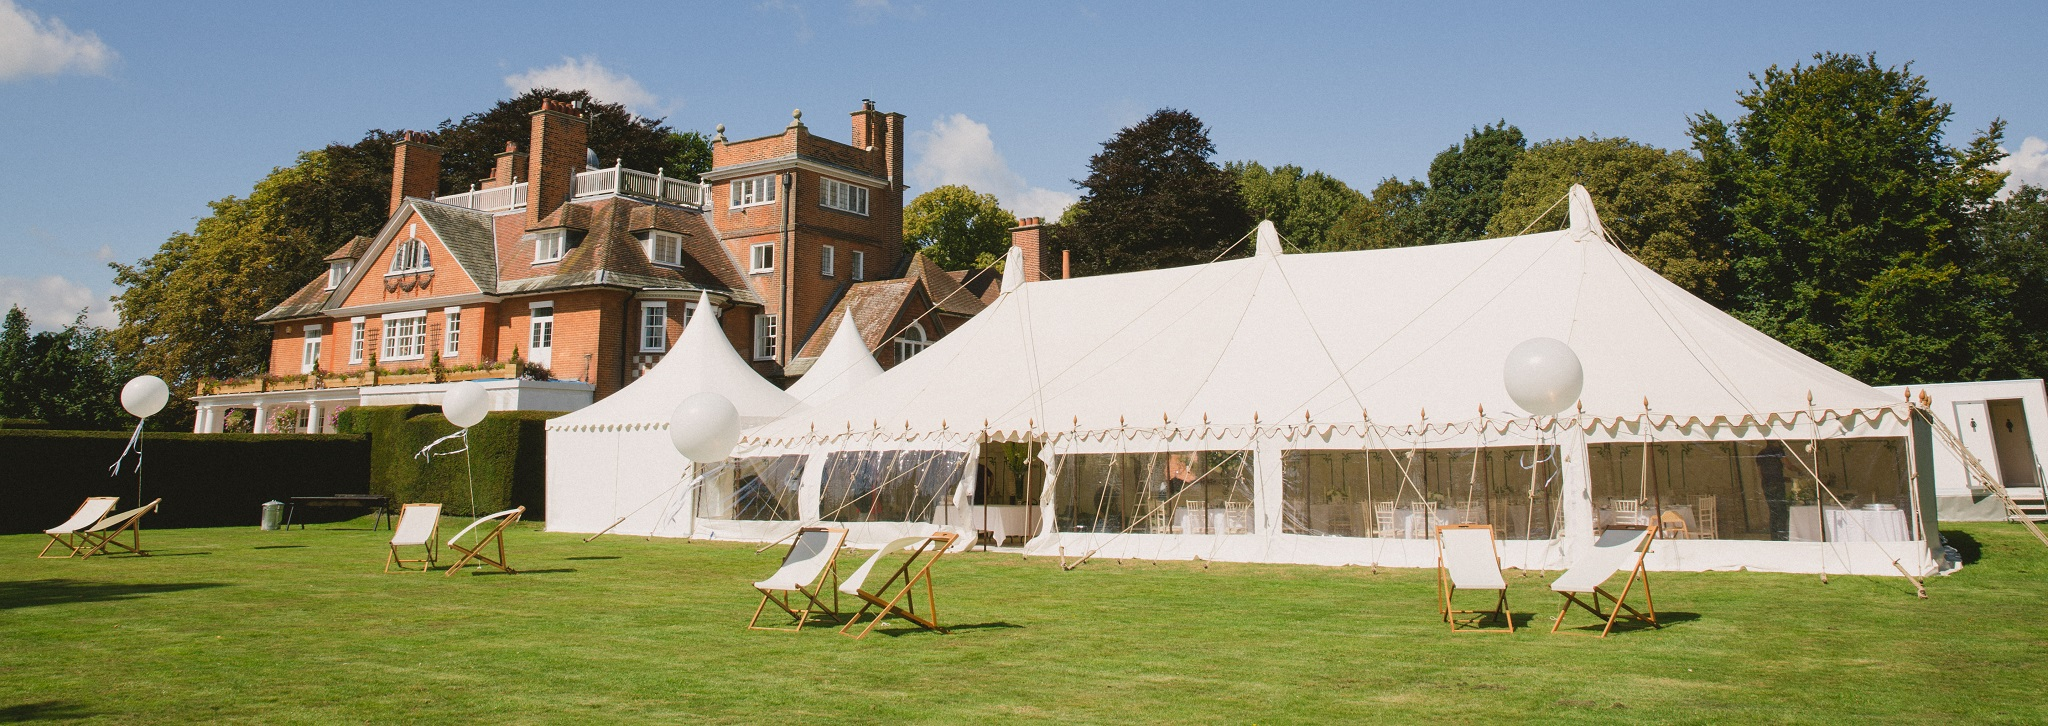 Outdoor Wedding Venue East Sussex